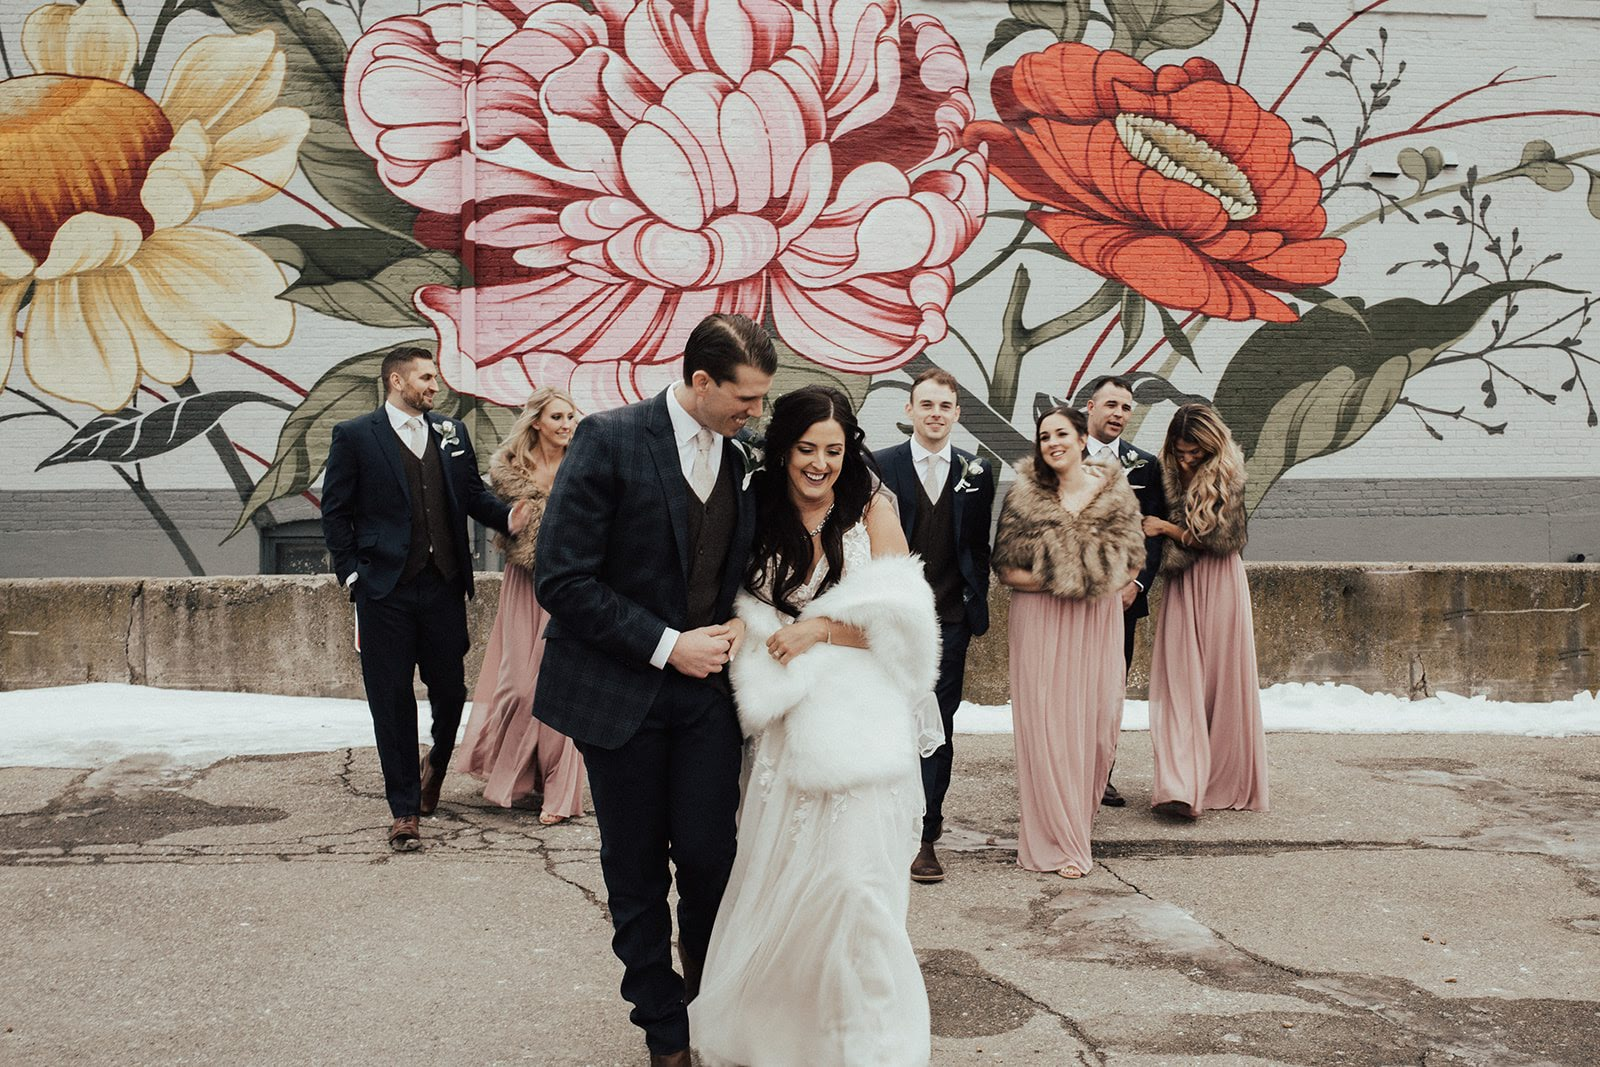 Murals in downtown Jackson provided such a backdrop for their bridal party pictures.